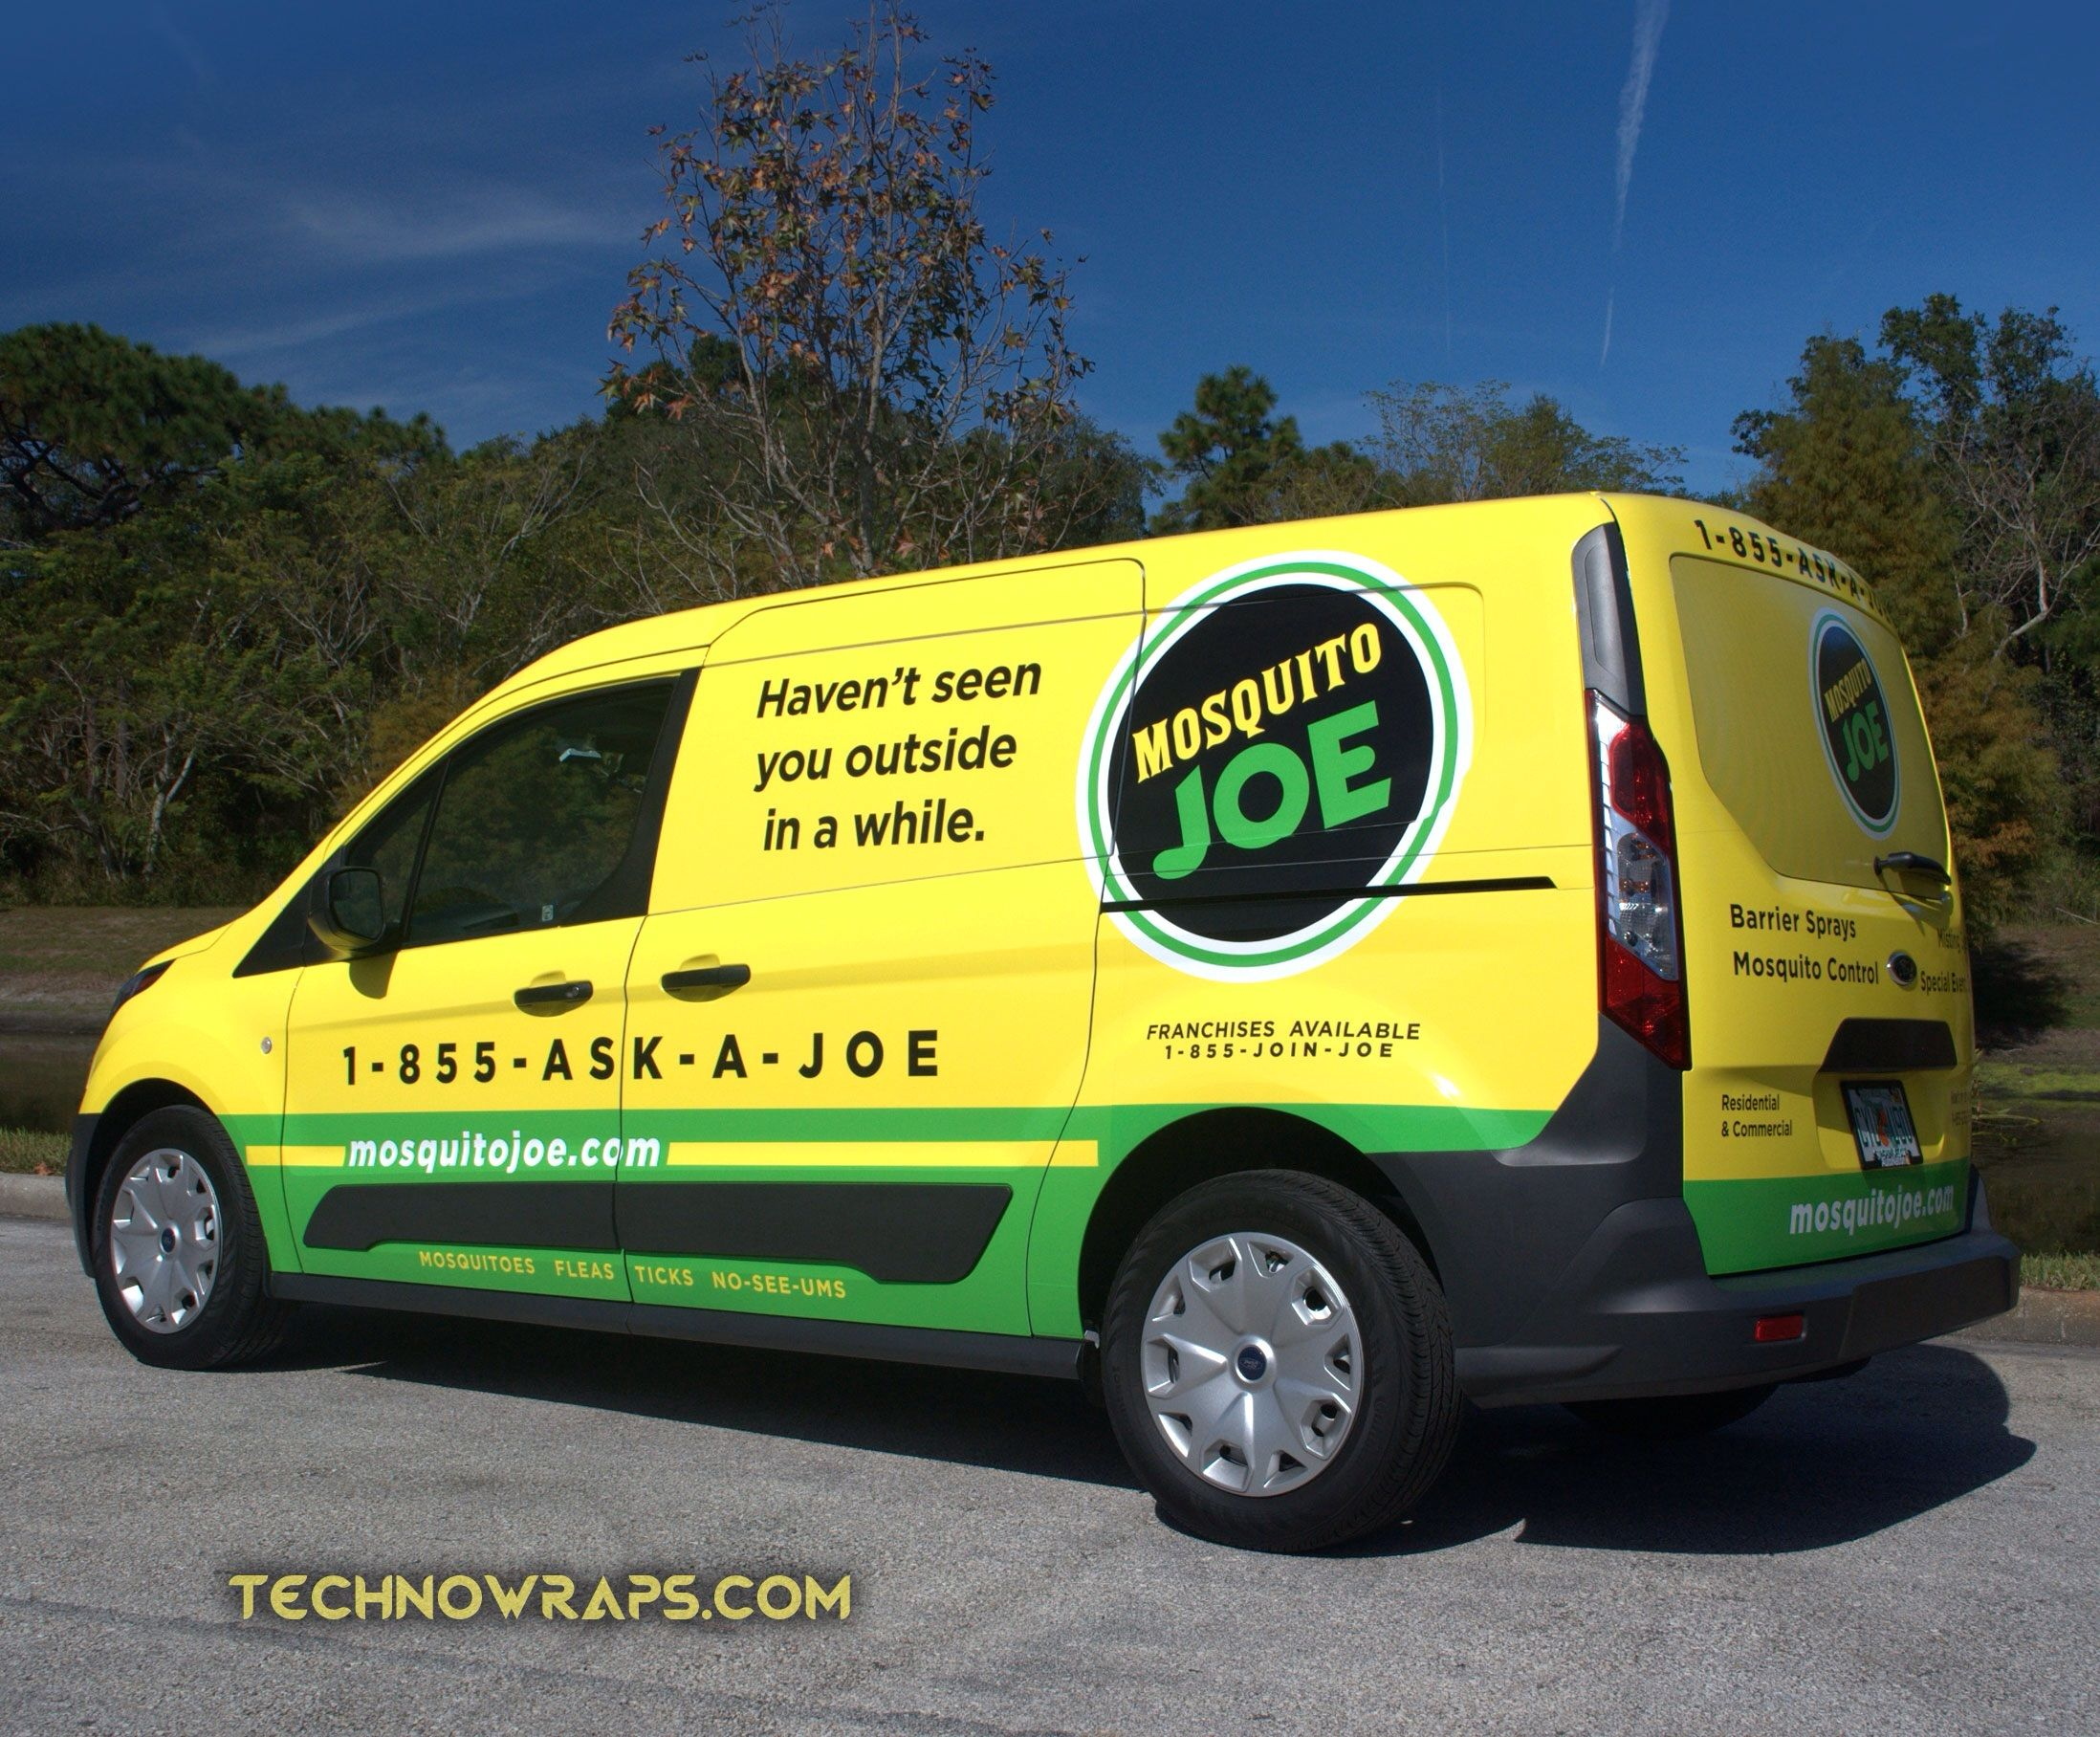 Ford Transit Connect Vinyl Truck Wrap For Mosquito Joe S Installed By Technosigns In Orlando Florida Car Wrap Ford Transit Trucks